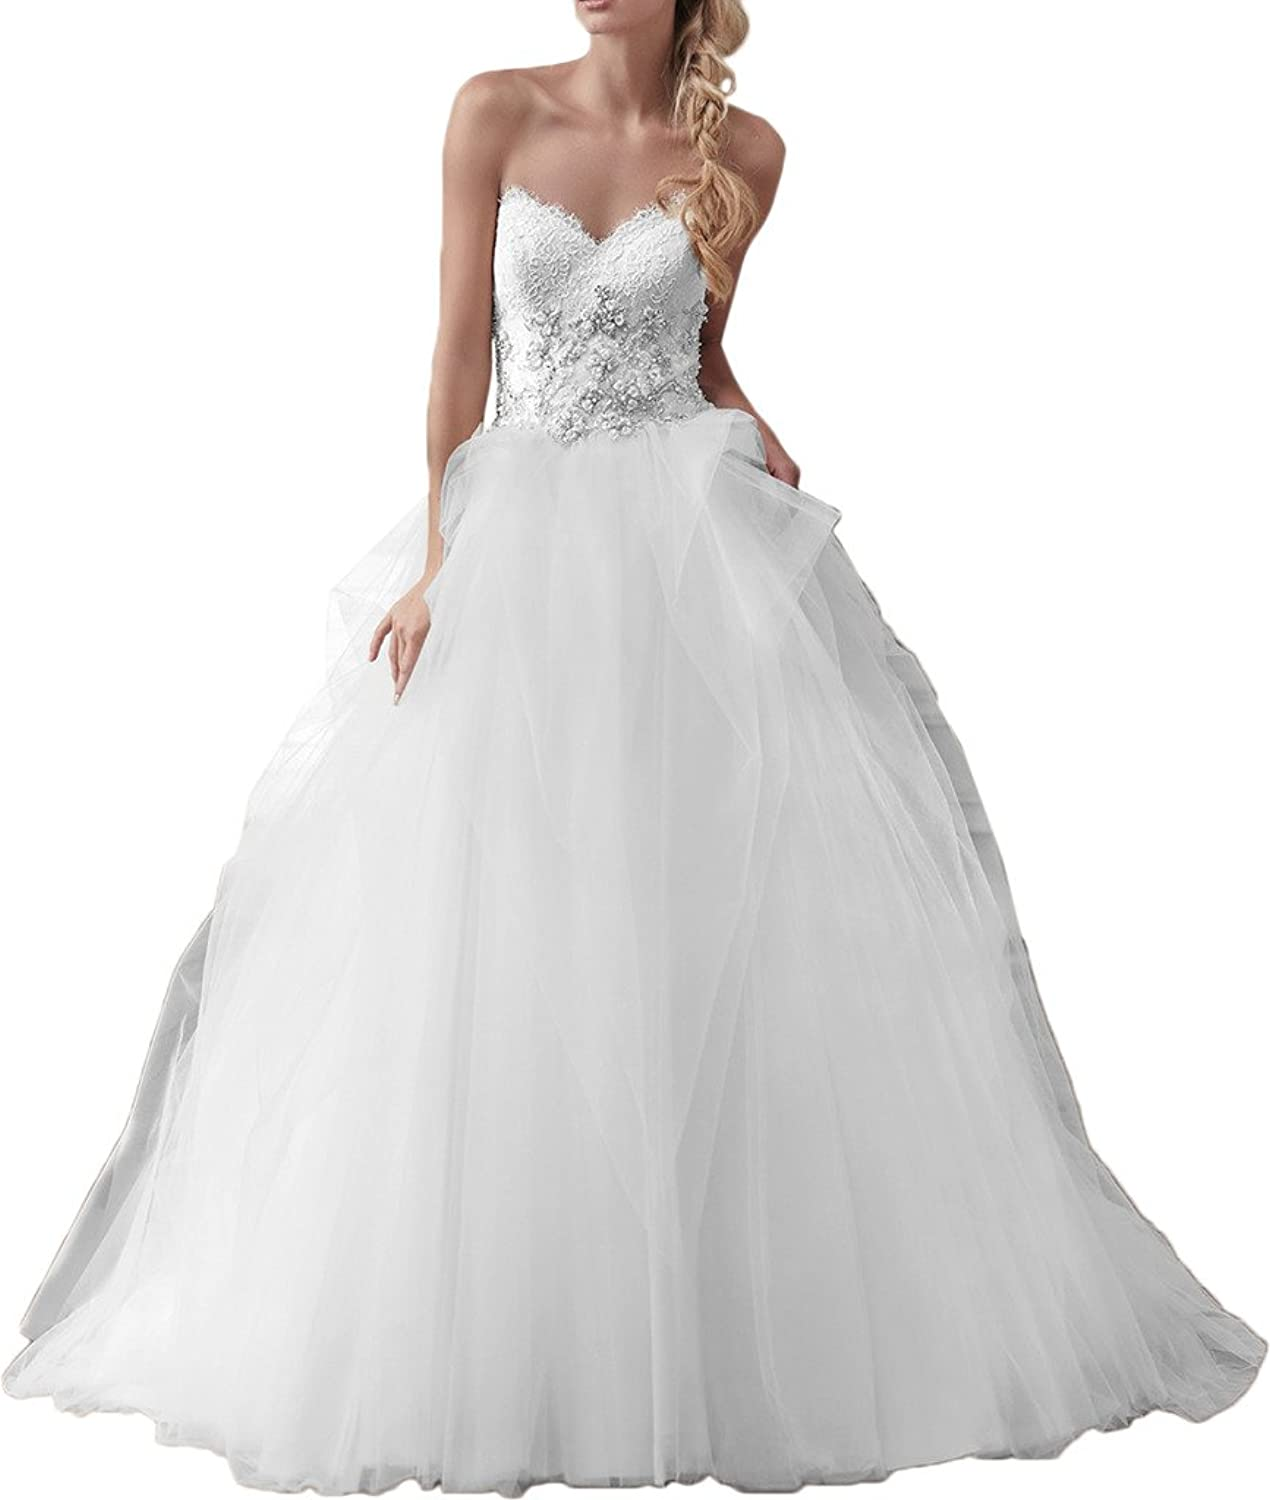 Avril Dress Sweetheart Ball Gown Beading Tulle Lace Wedding Dress Long Train